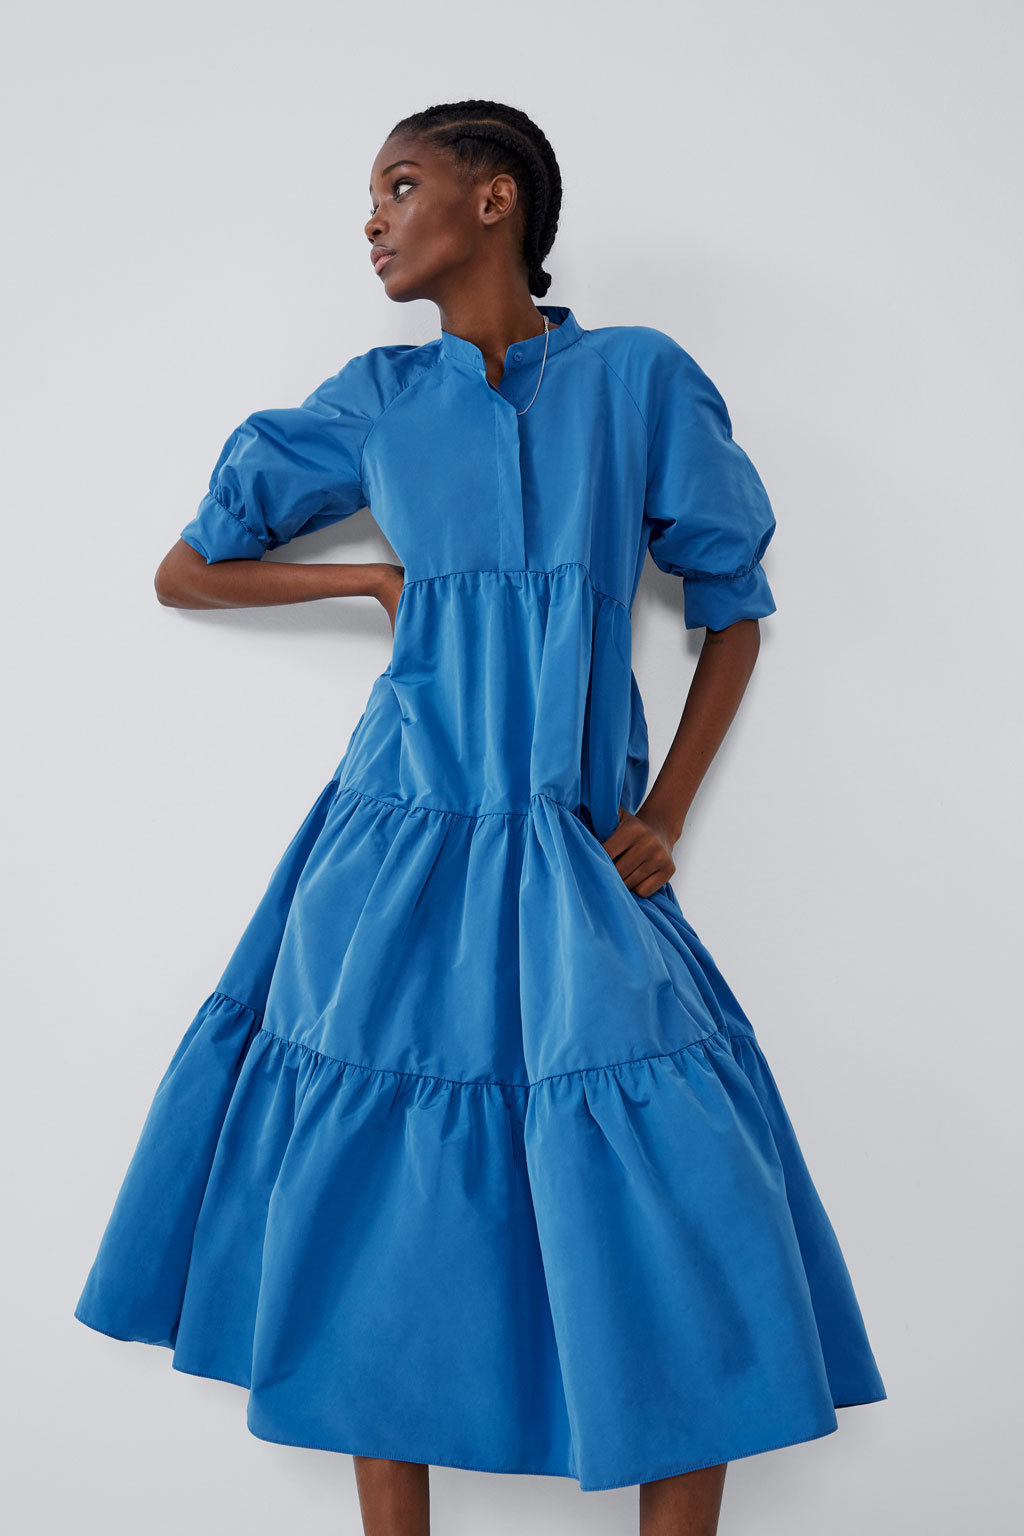 Women's Dress 2020 New Summer Puff Loose Solid Color O neck Dress For Women Long Big Swing Dress Is Magnificent